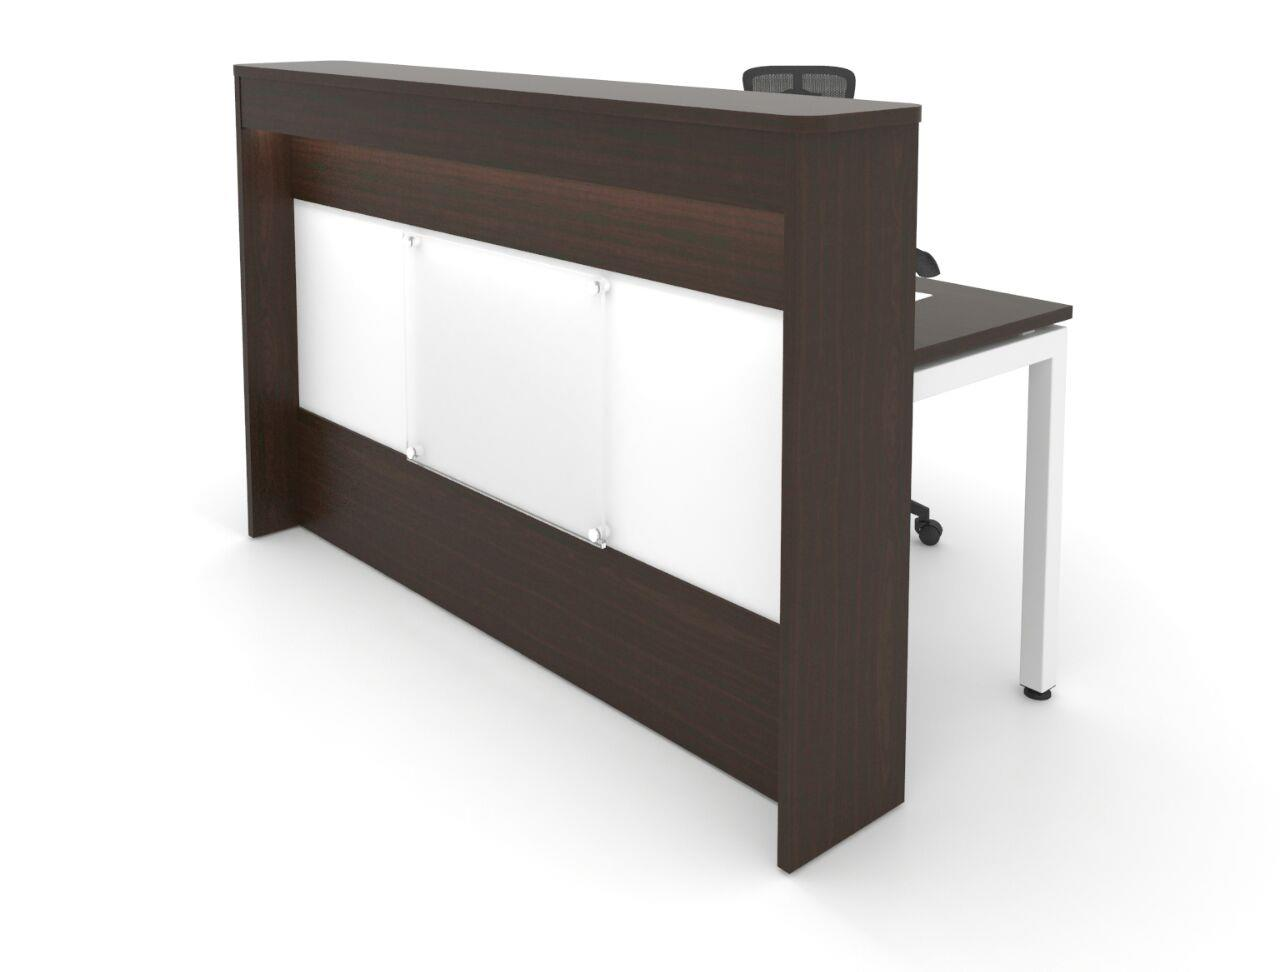 Office Design Reception Counter Table OFM1200 | Office Furniture KL